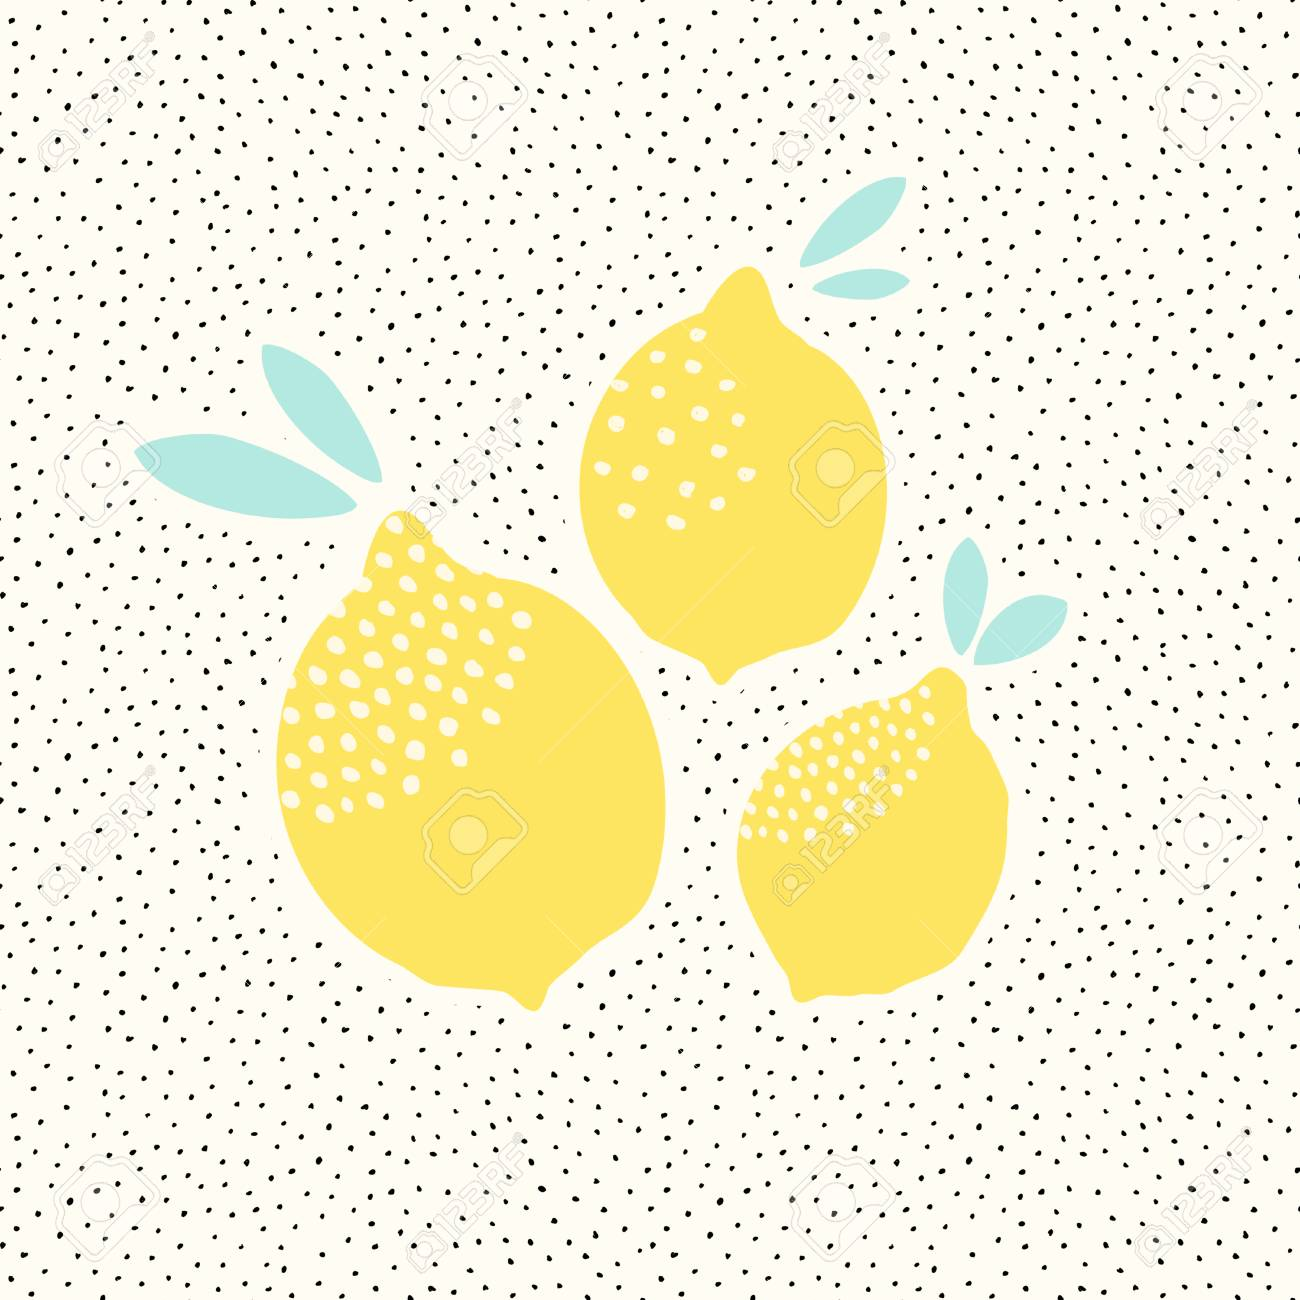 Cute Card Design With Lemons In Yellow On Black And White Dots ...